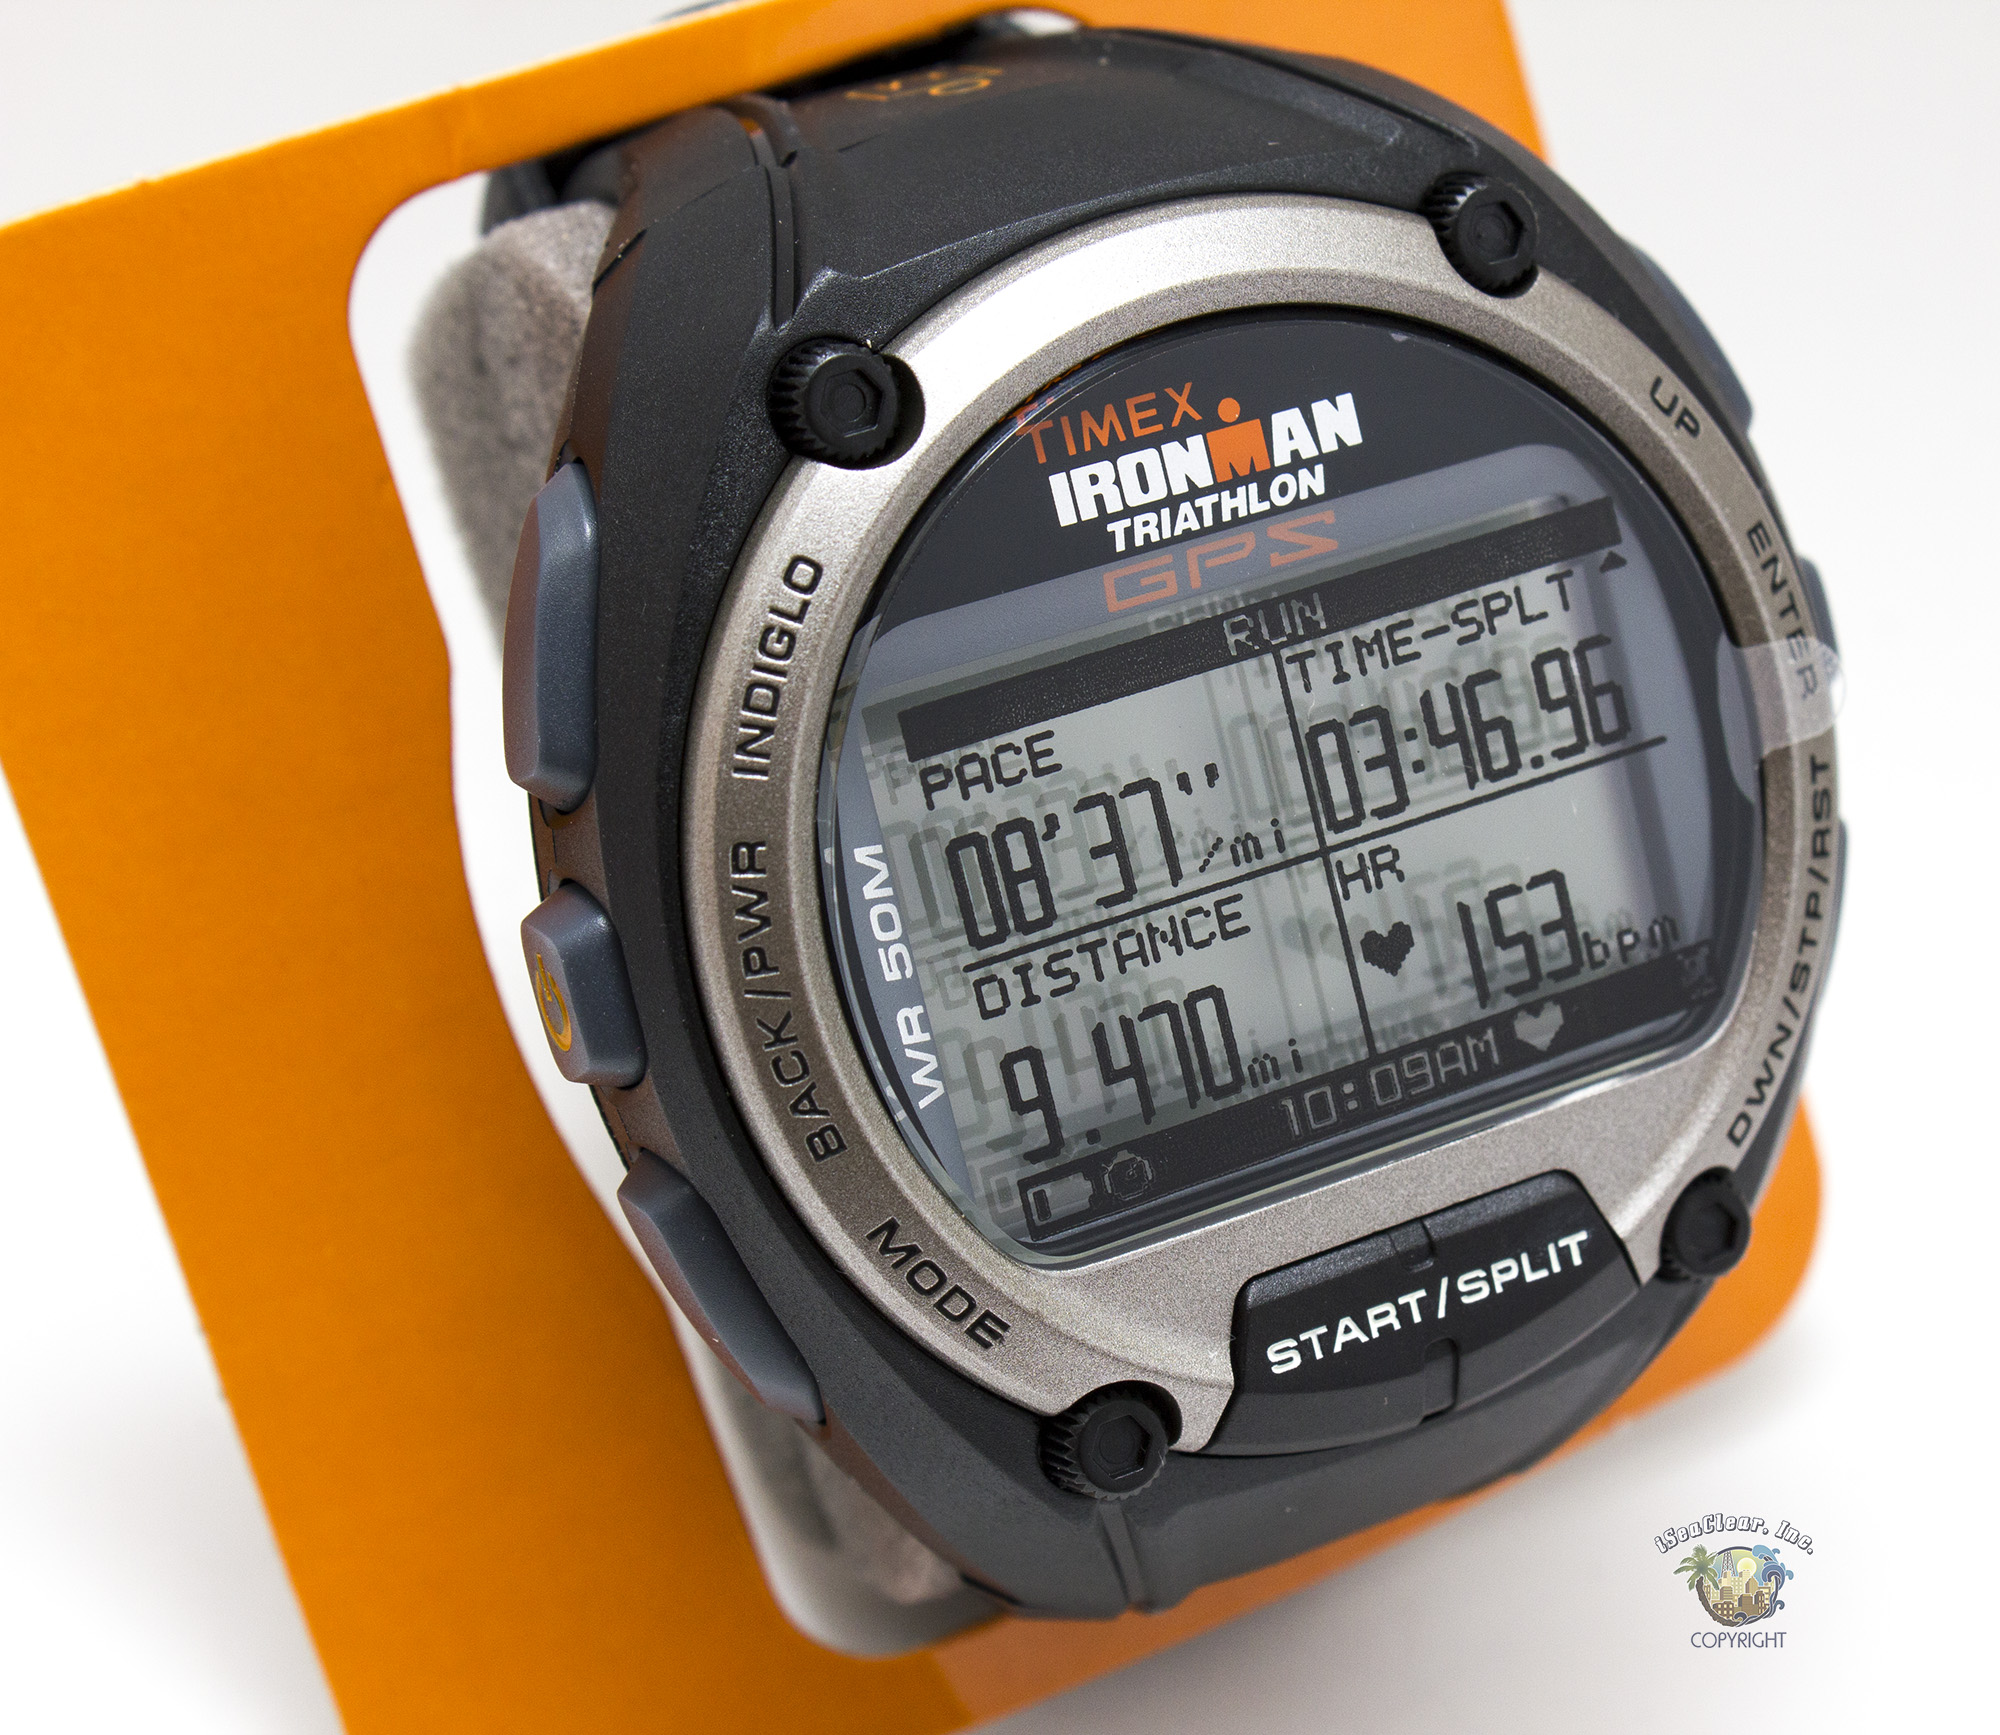 Timex ironman t5k444 gps wrist watch with heart rate monitor iseaclear inc for Watches with gps